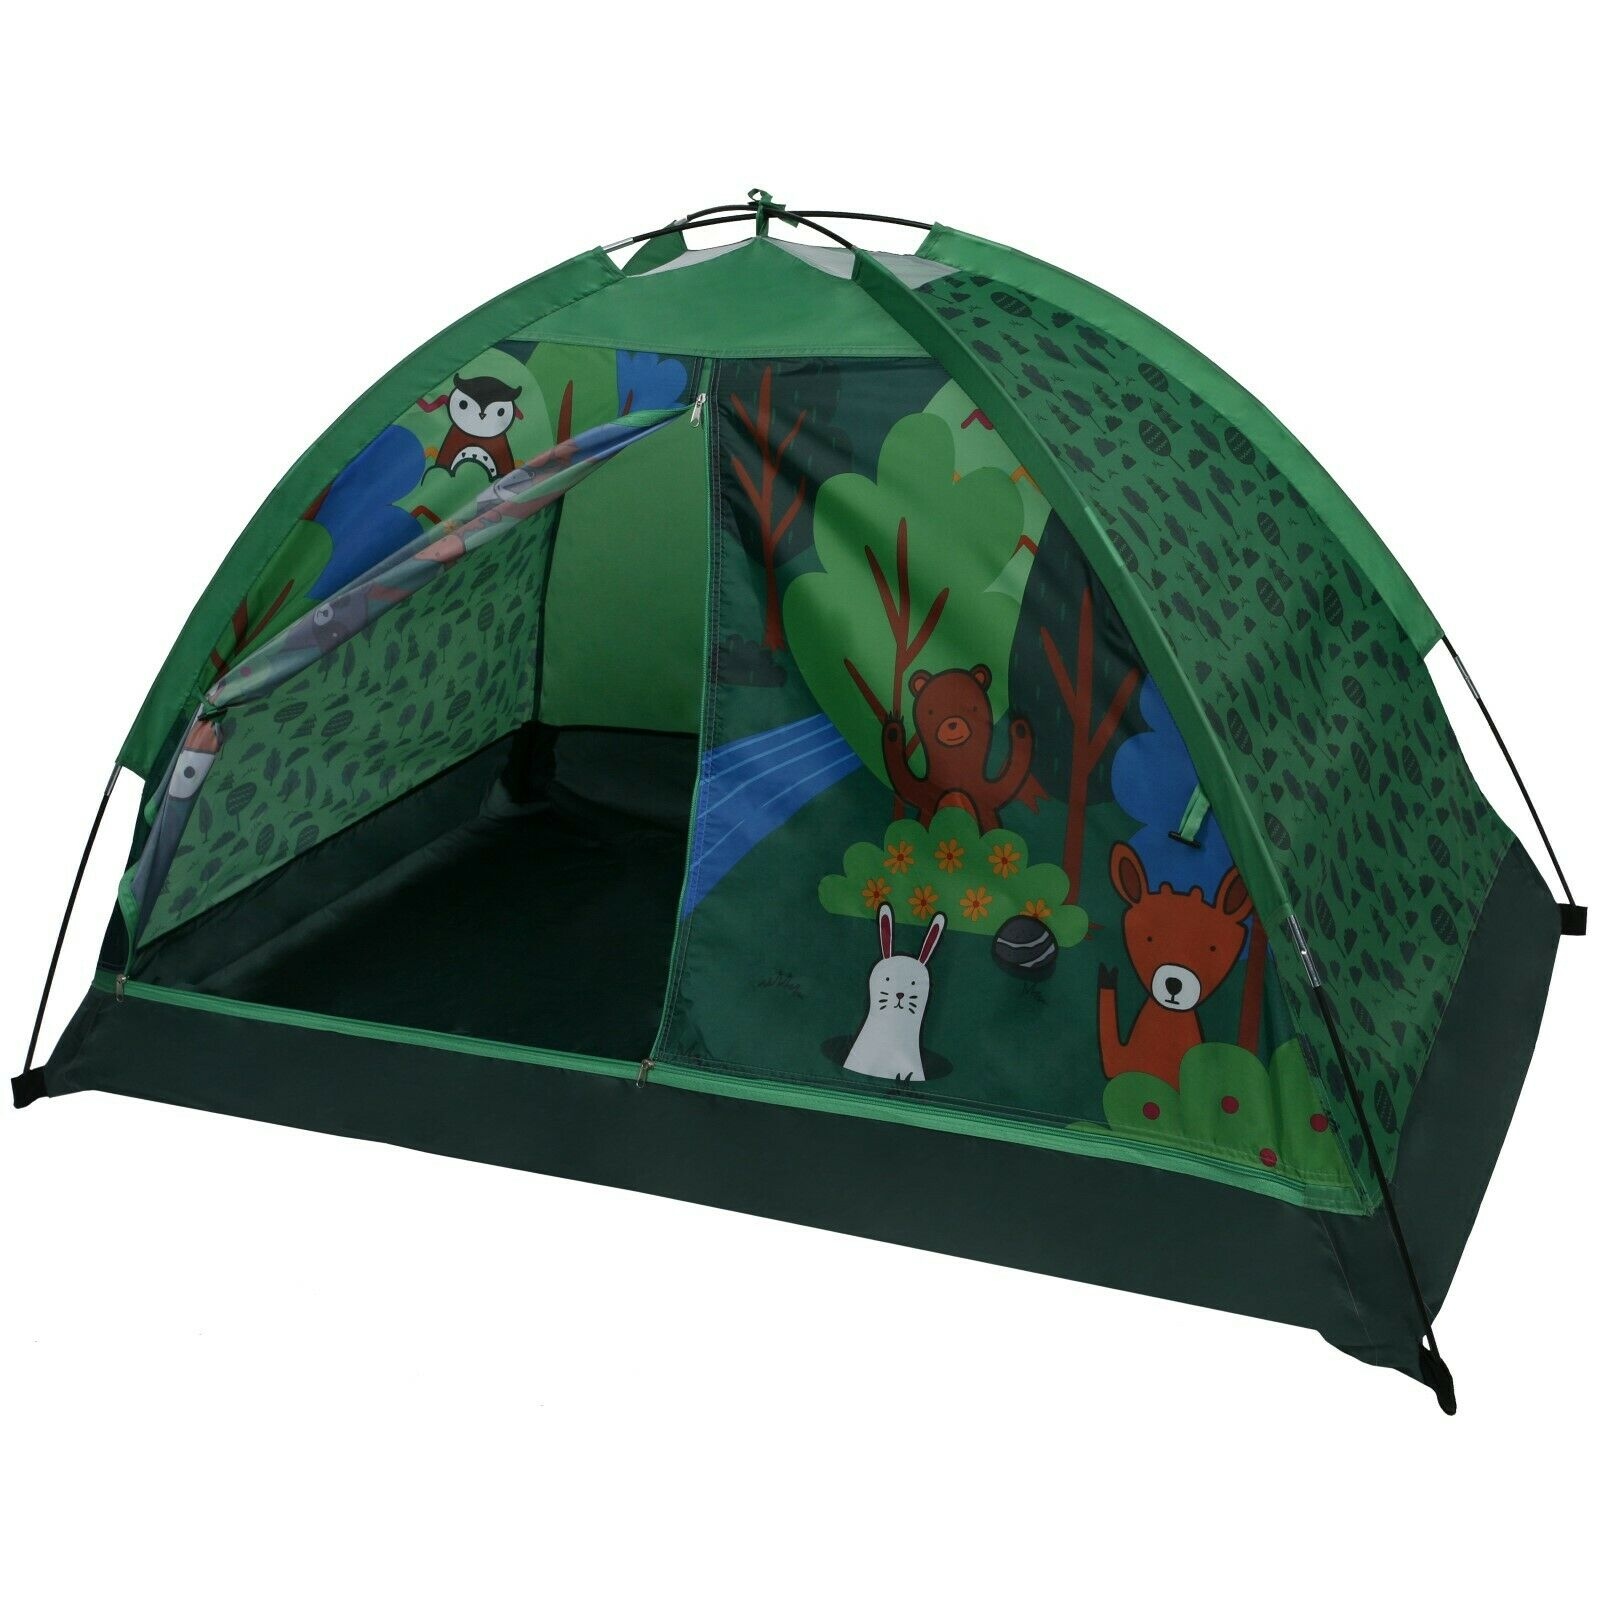 Kids Indoor Tent  ldren Camping Playing Ozark Trail Camp Shelter Play Toys